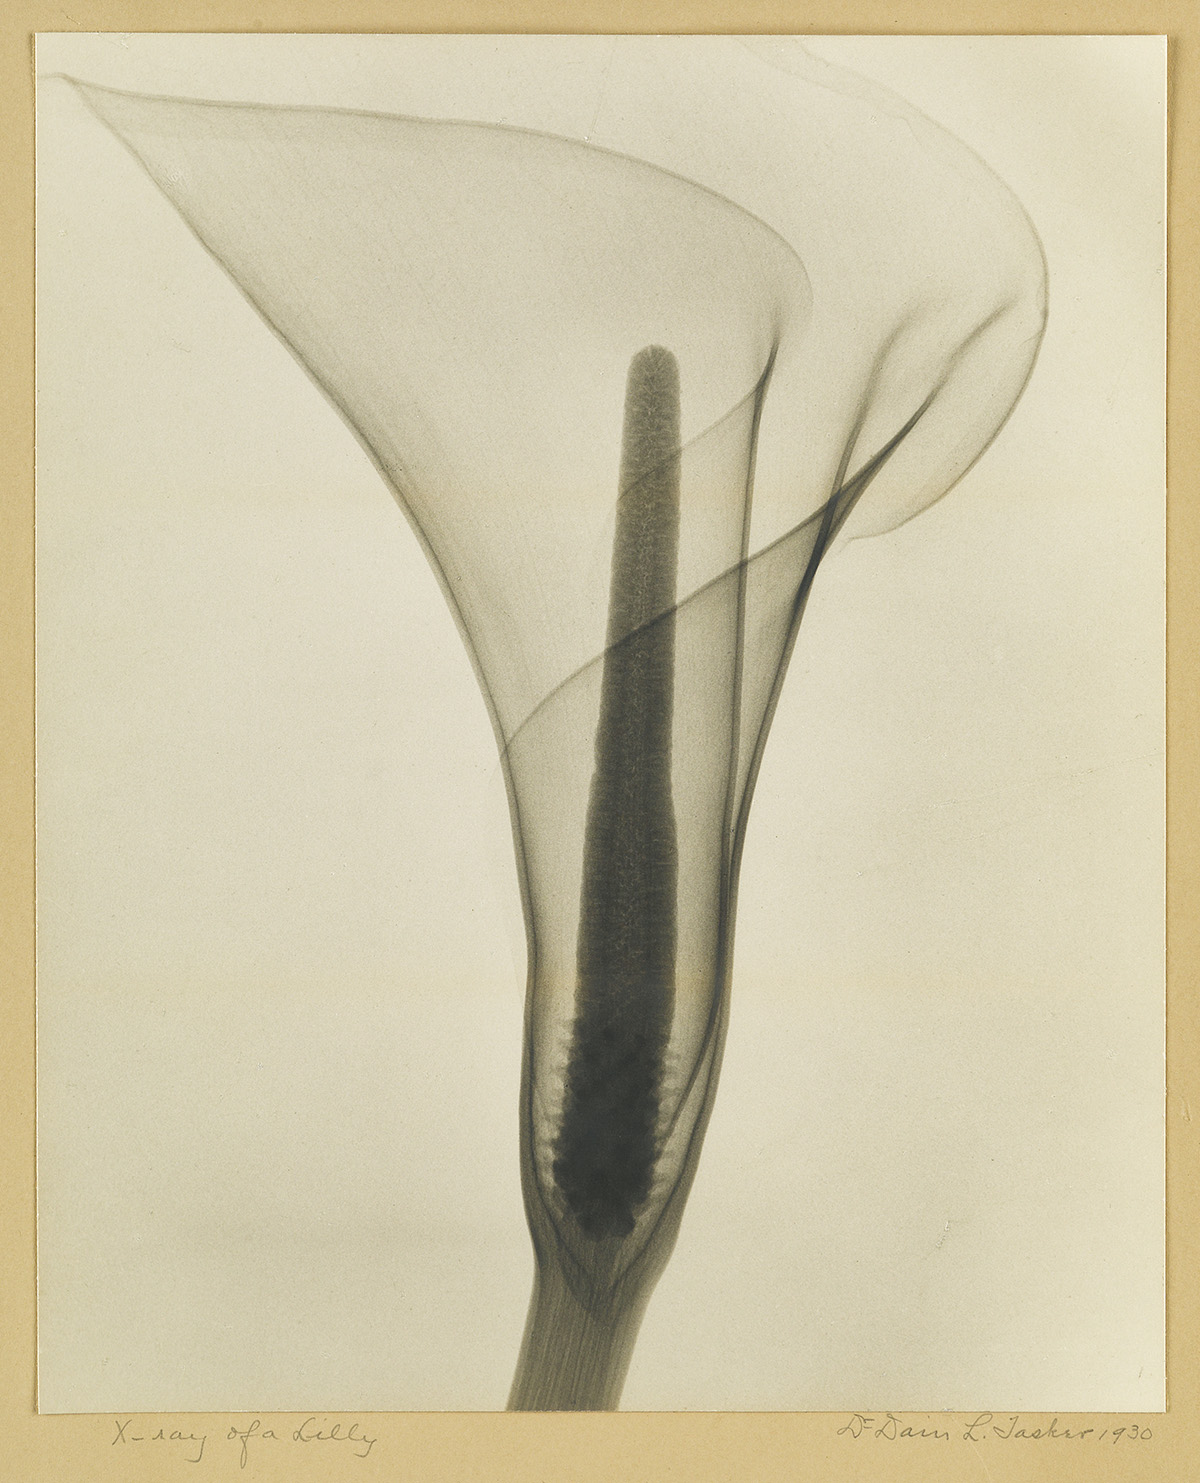 DR. DAIN L. TASKER (1872-1964) X-Ray of a Lily.